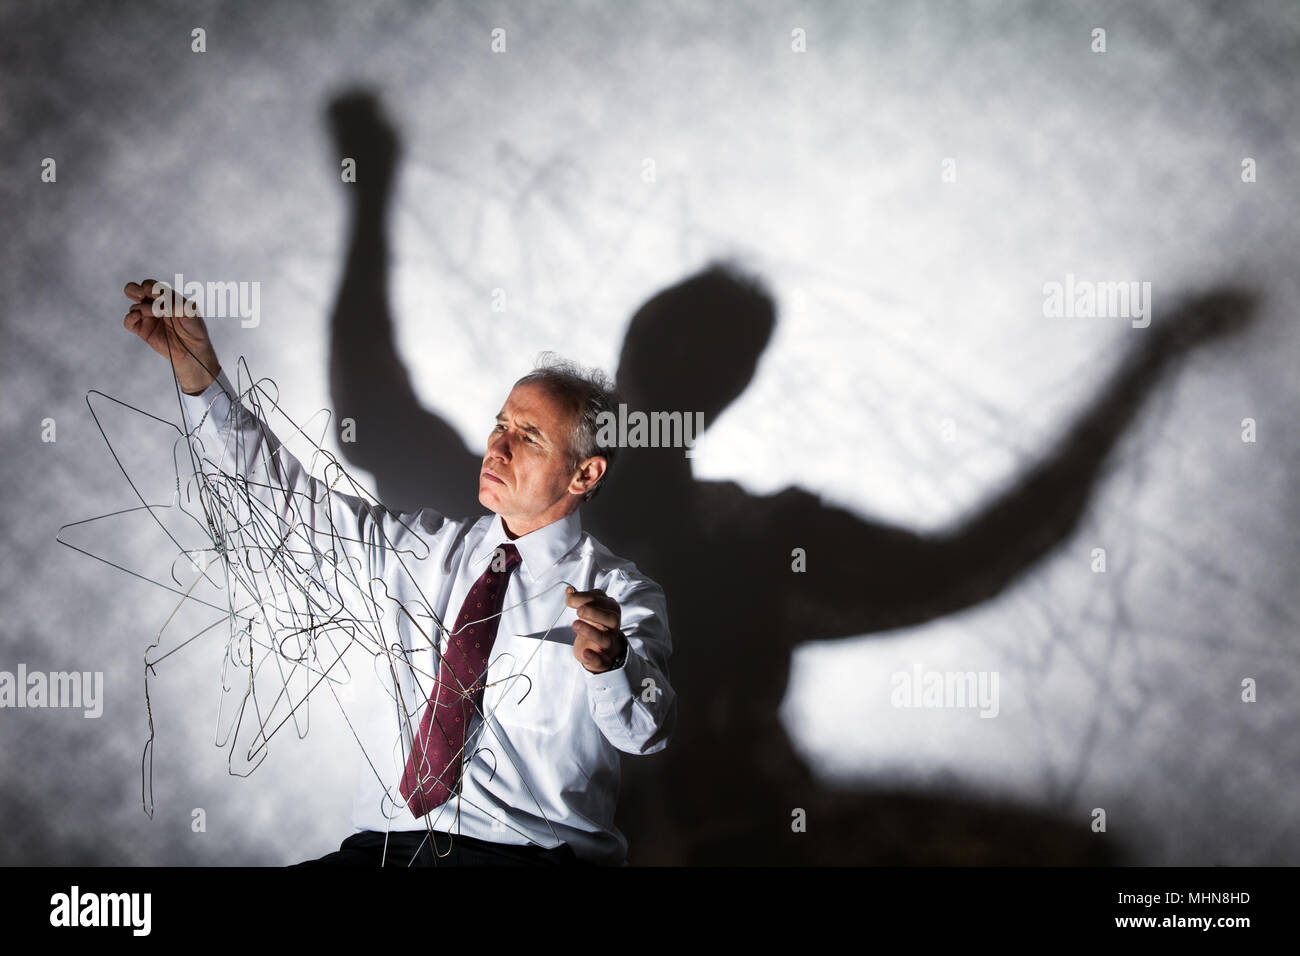 Man untangling a mass of coat hangers - Stock Image